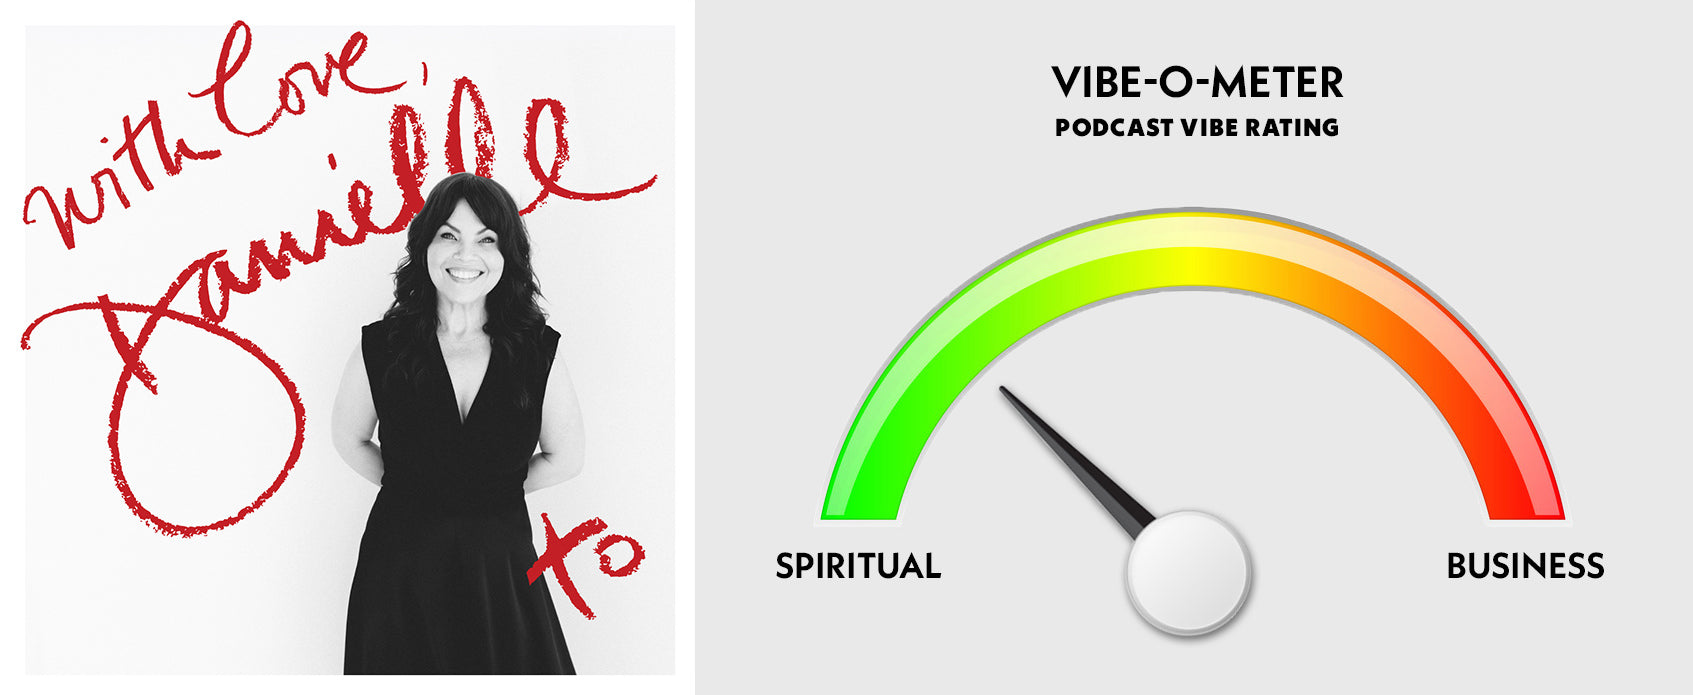 With Love, Danielle podcast rating